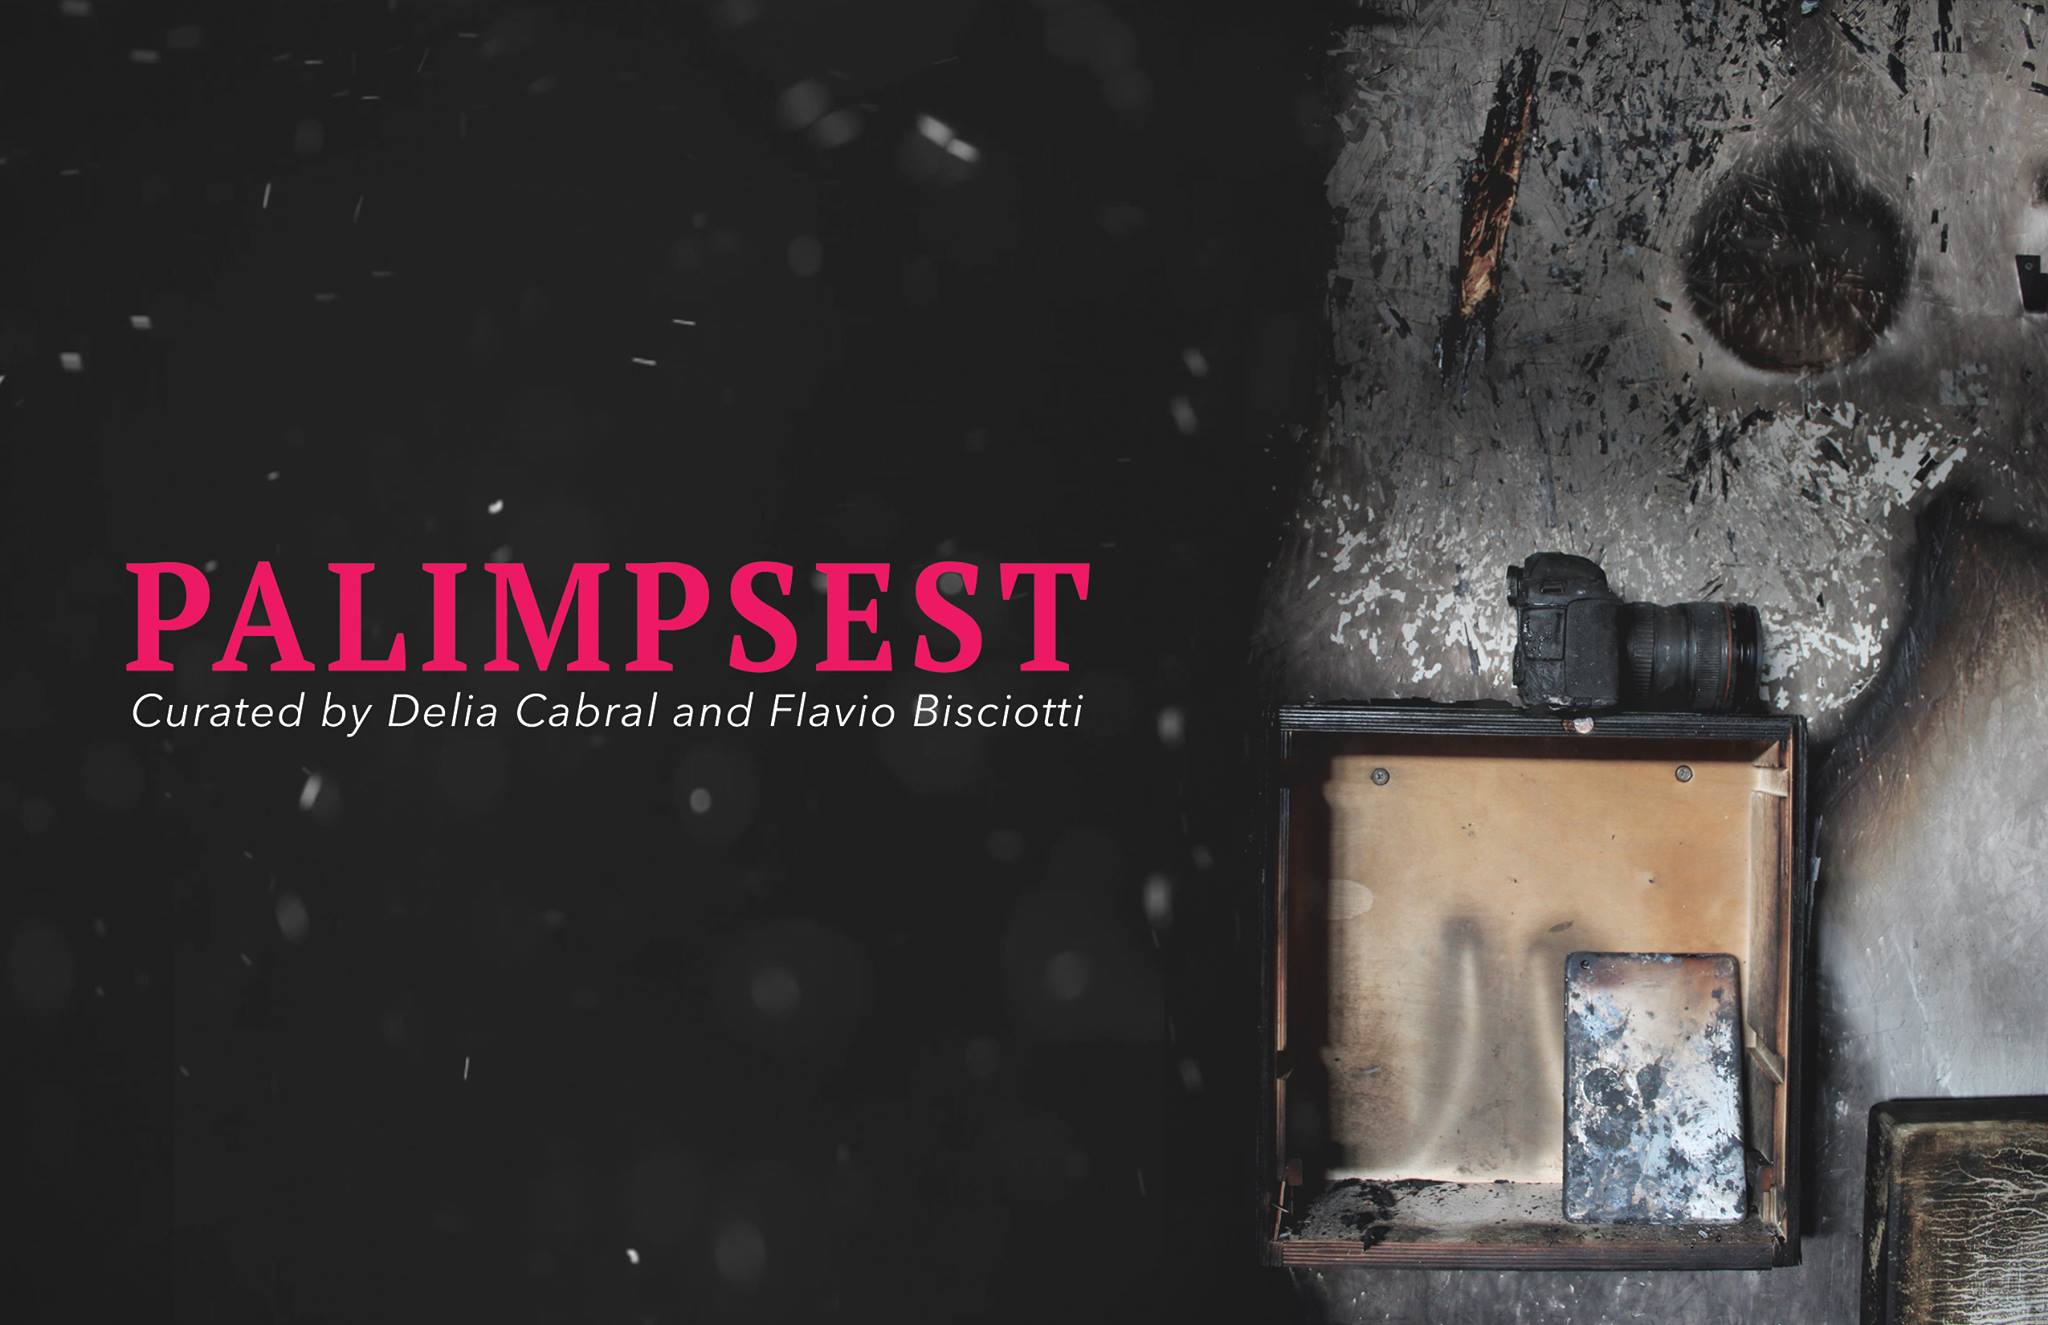 'Palimpsest' Group show - Venice, CA - October 2016